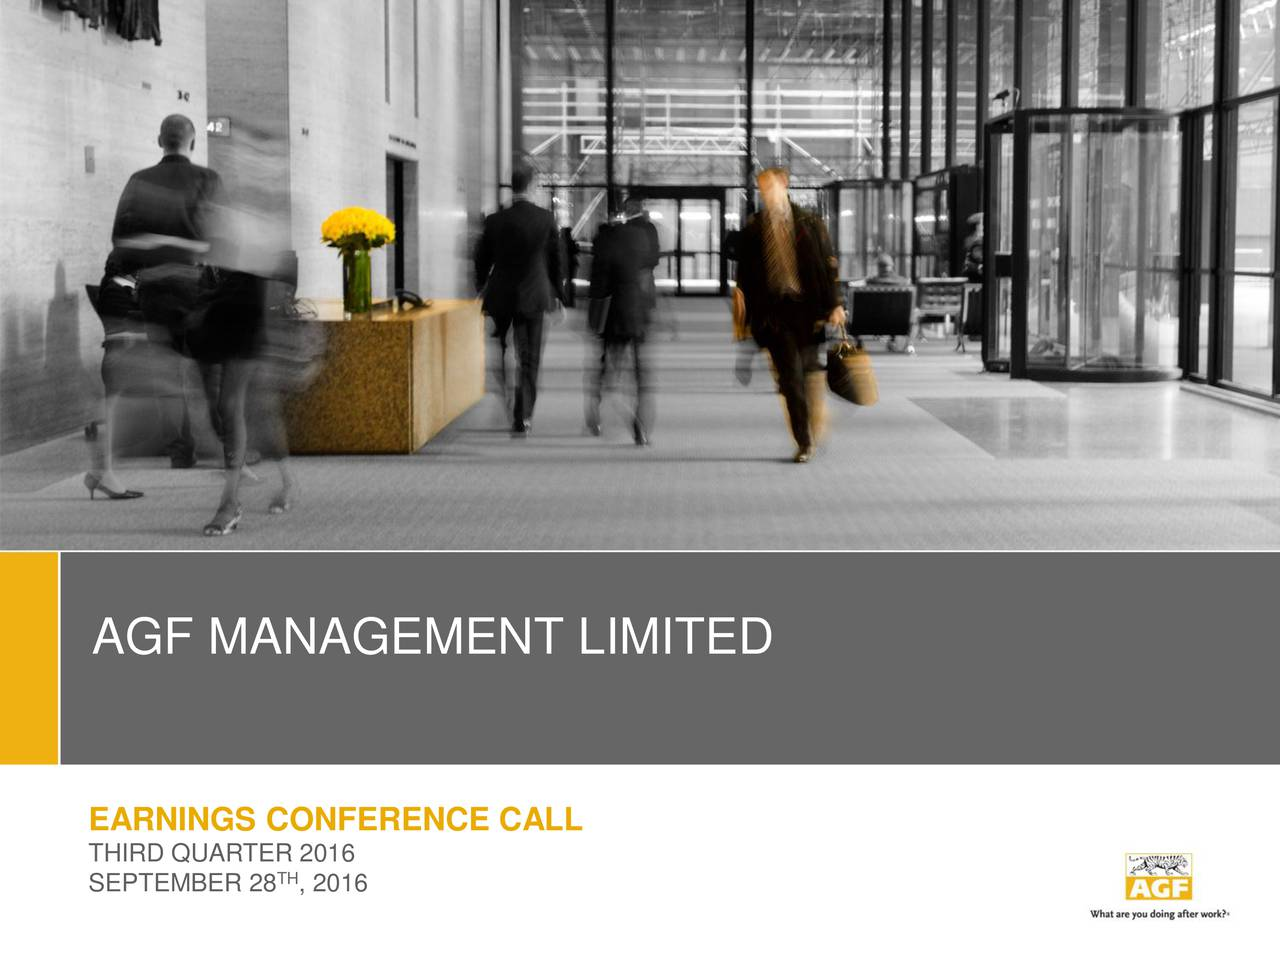 EARNINGS CONFERENCE CALL THIRD QUARTTH 2016 SEPTEMBER 28 , 2016